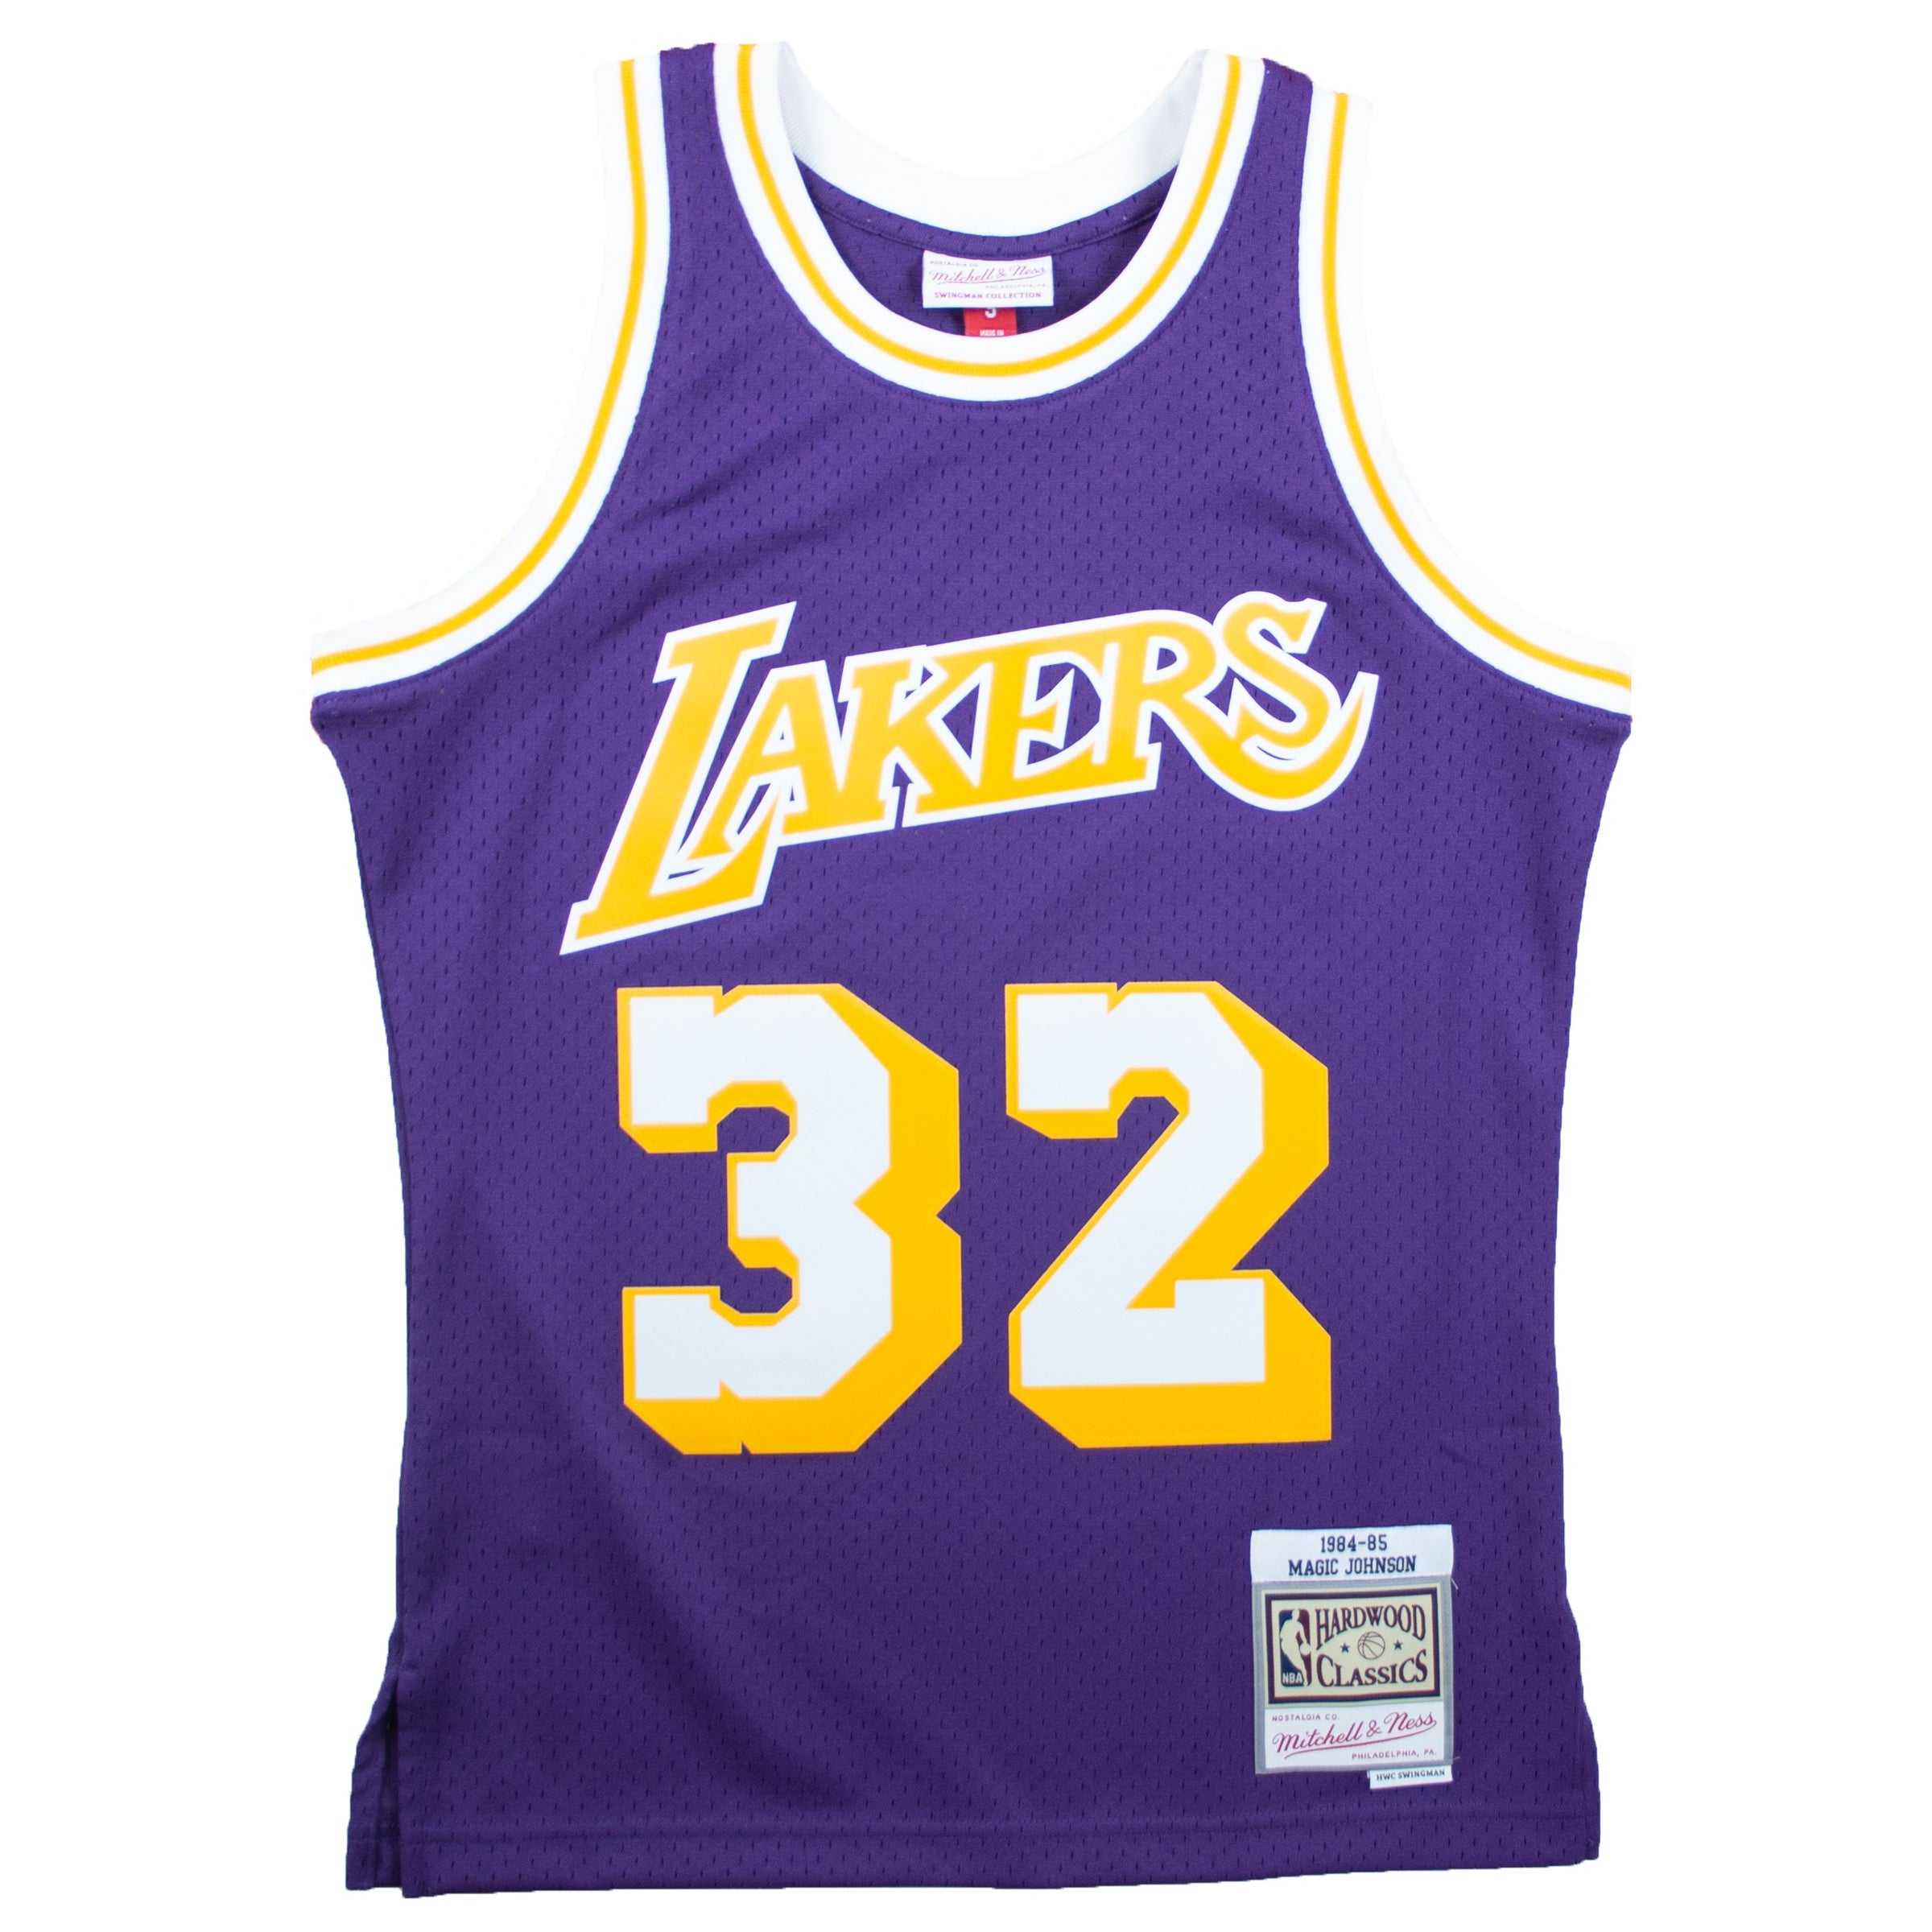 51e95eba5f6 Mitchell & Ness NBA Swingman 84-85 Los Angeles Lakers Magic Johnson ...